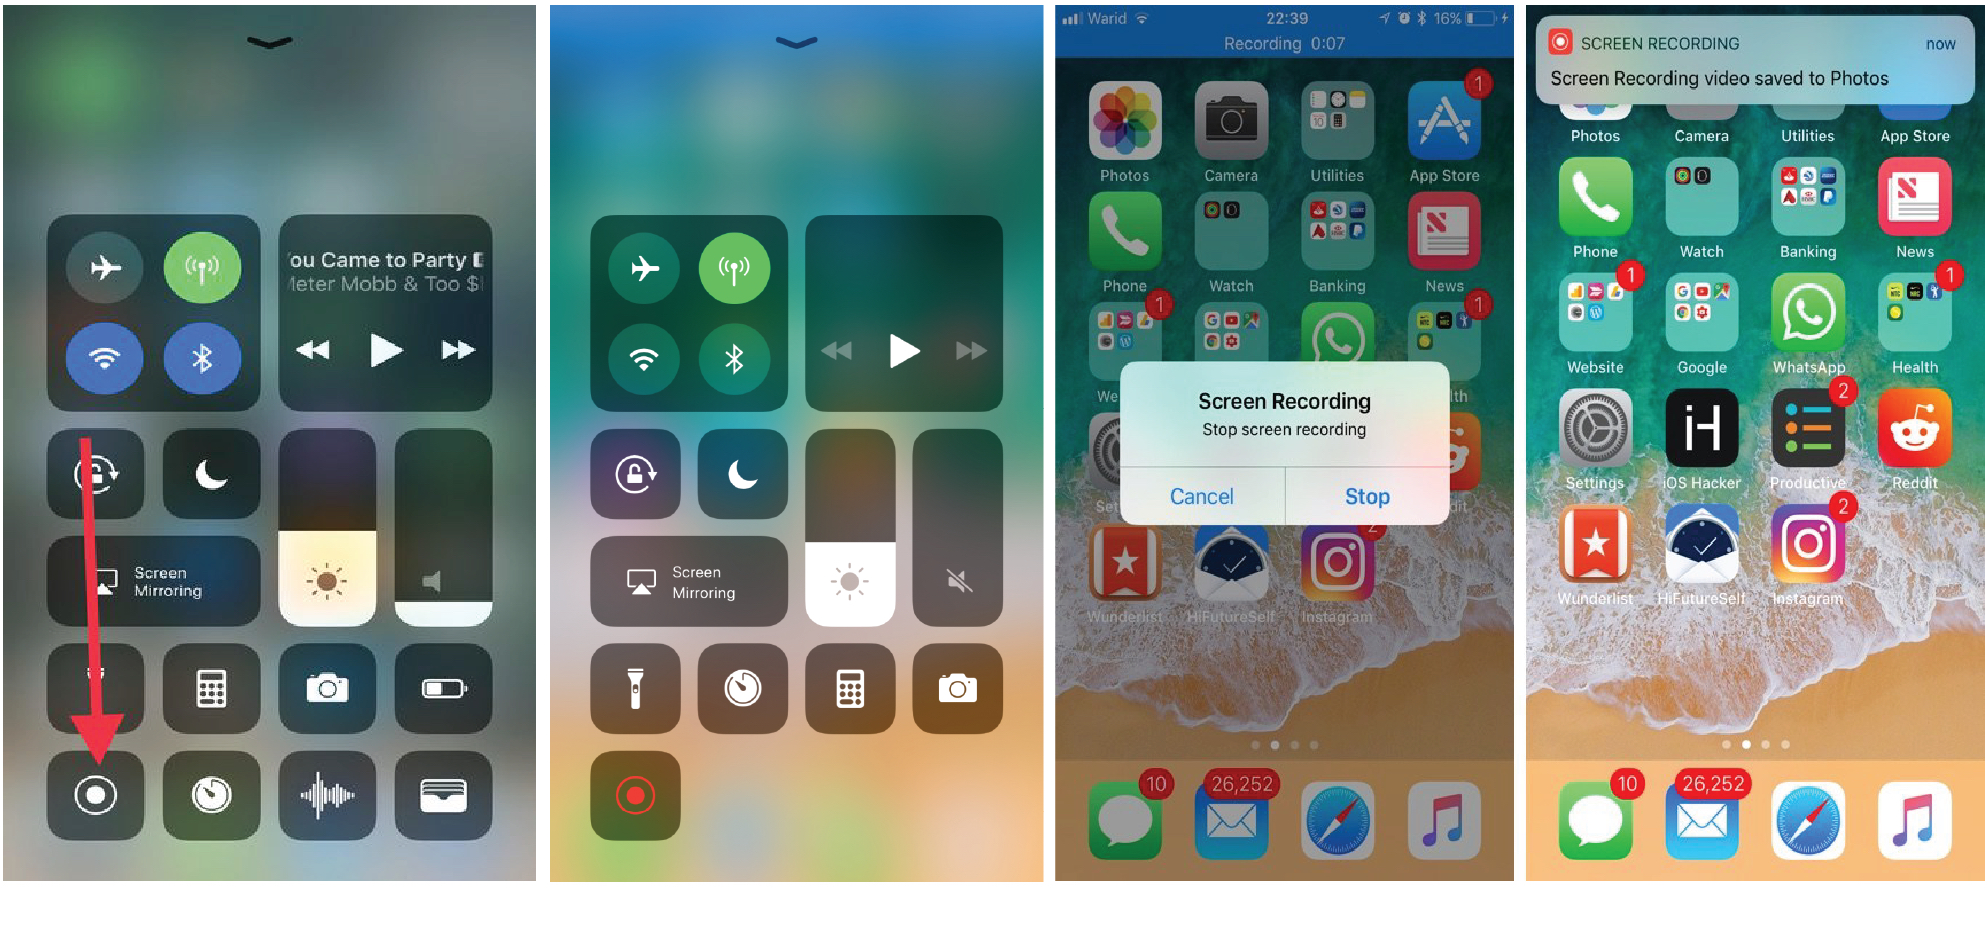 Start Screen Recording And Capture The Instagram Video